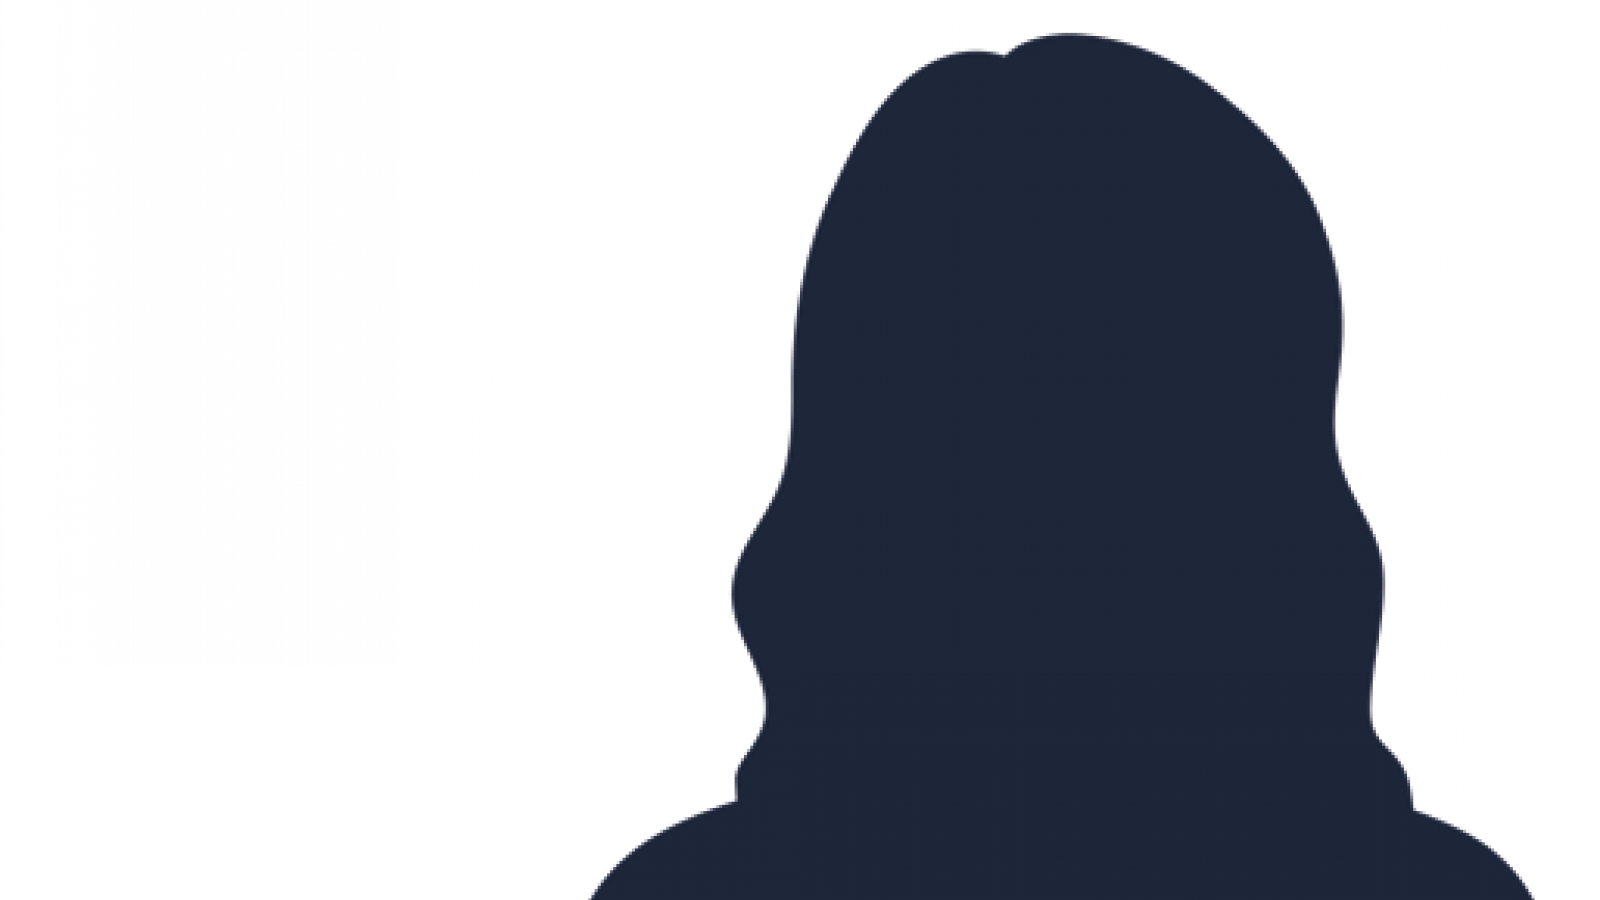 Silhouette vrouw.PNG